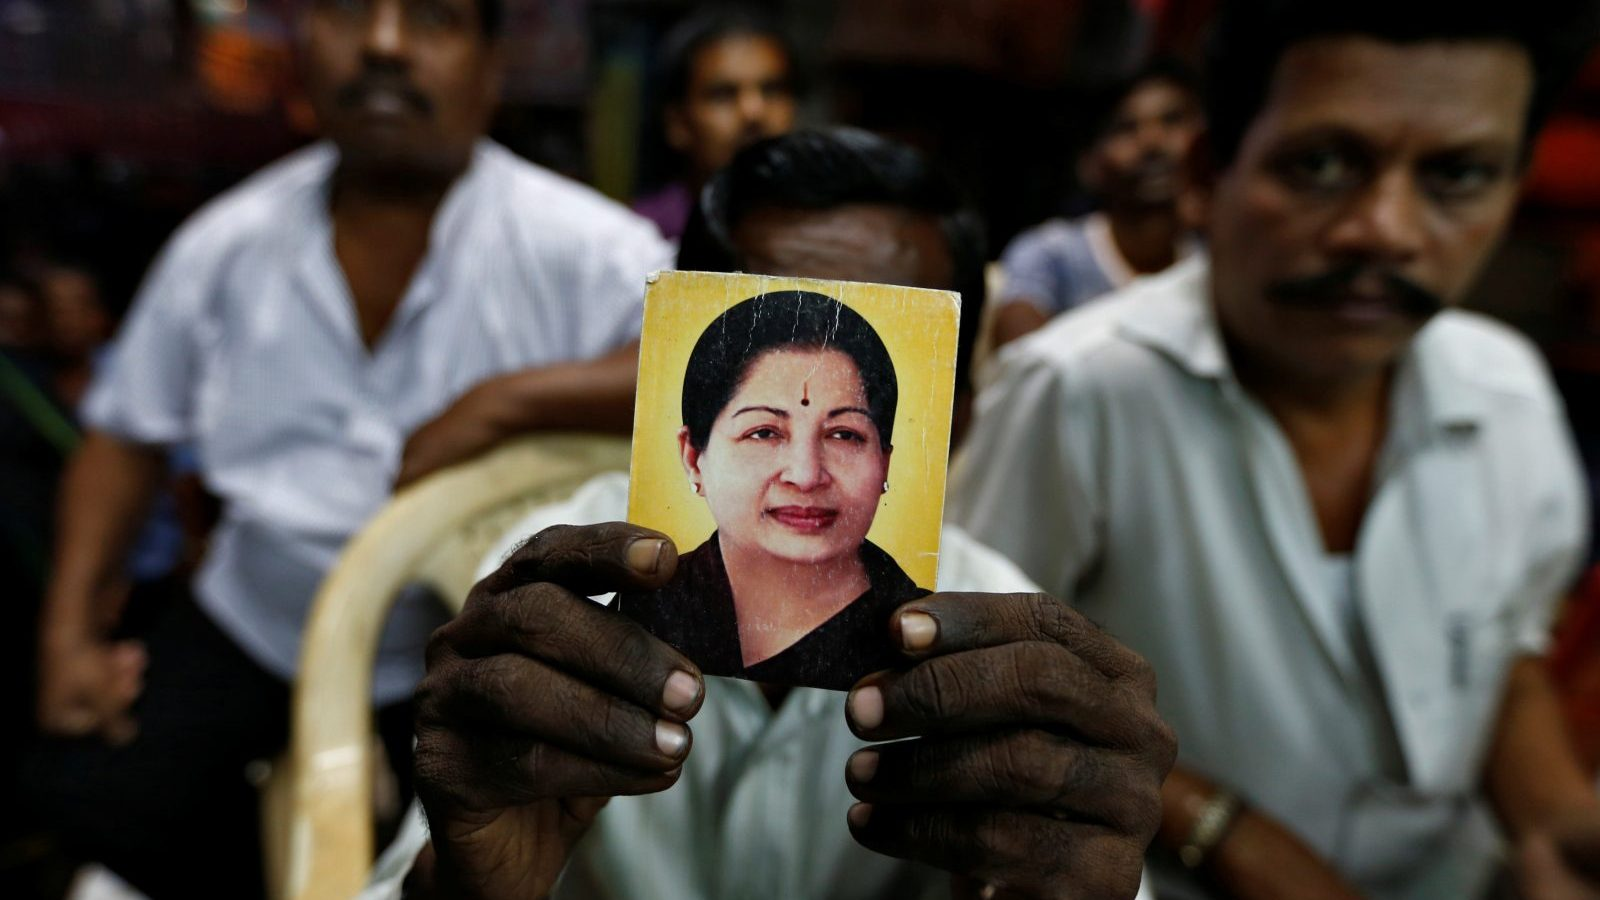 A supporter of Tamil Nadu Chief Minister Jayalalithaa Jayaraman holds her photo at the AIADMK party office in Mumbai, India, December 5, 2016. REUTERS/Danish Siddiqui - RC1571412880